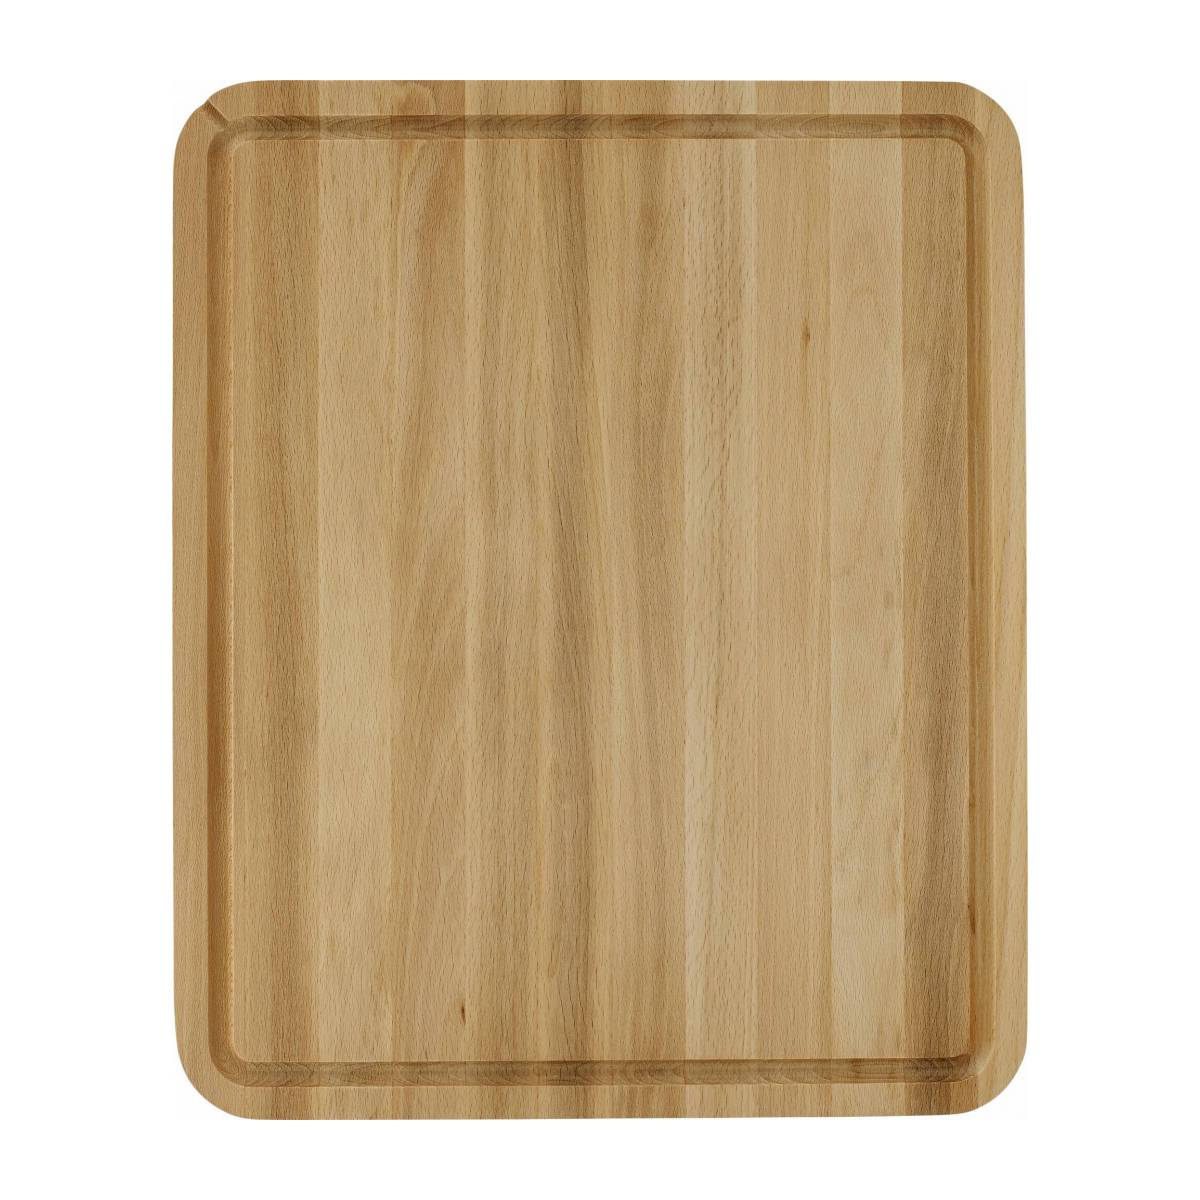 Cutting board n°4